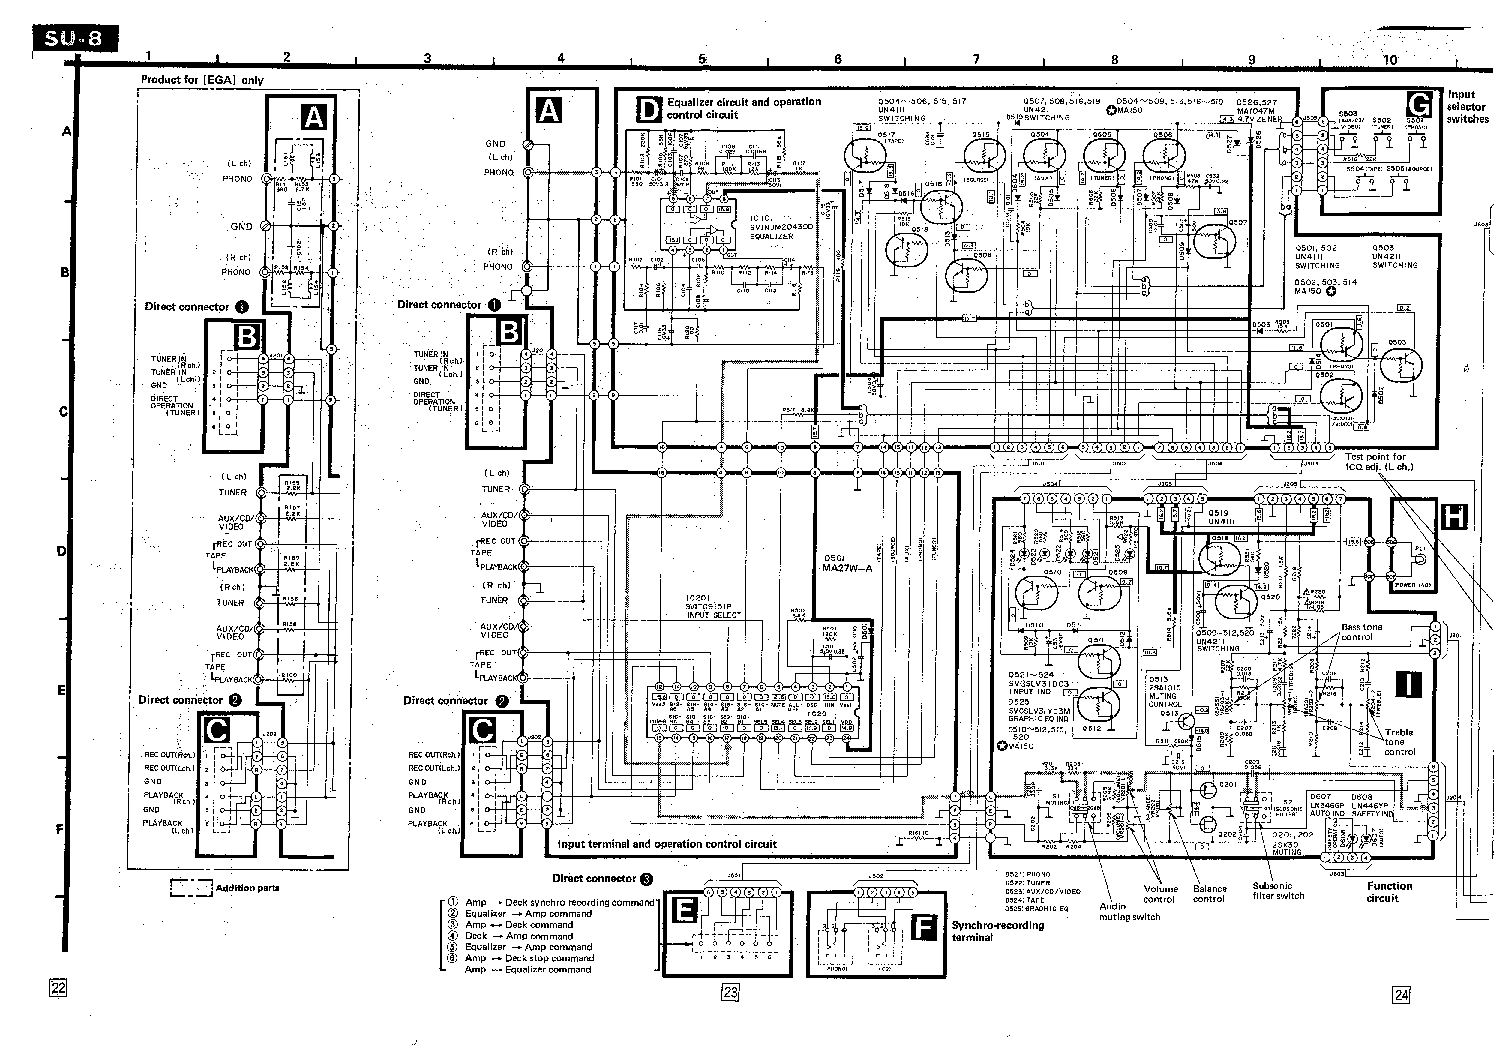 technics_su 8_sch.pdf_1 technics su g91 wiring diagram wiring diagram and schematic technics wiring diagram at nearapp.co